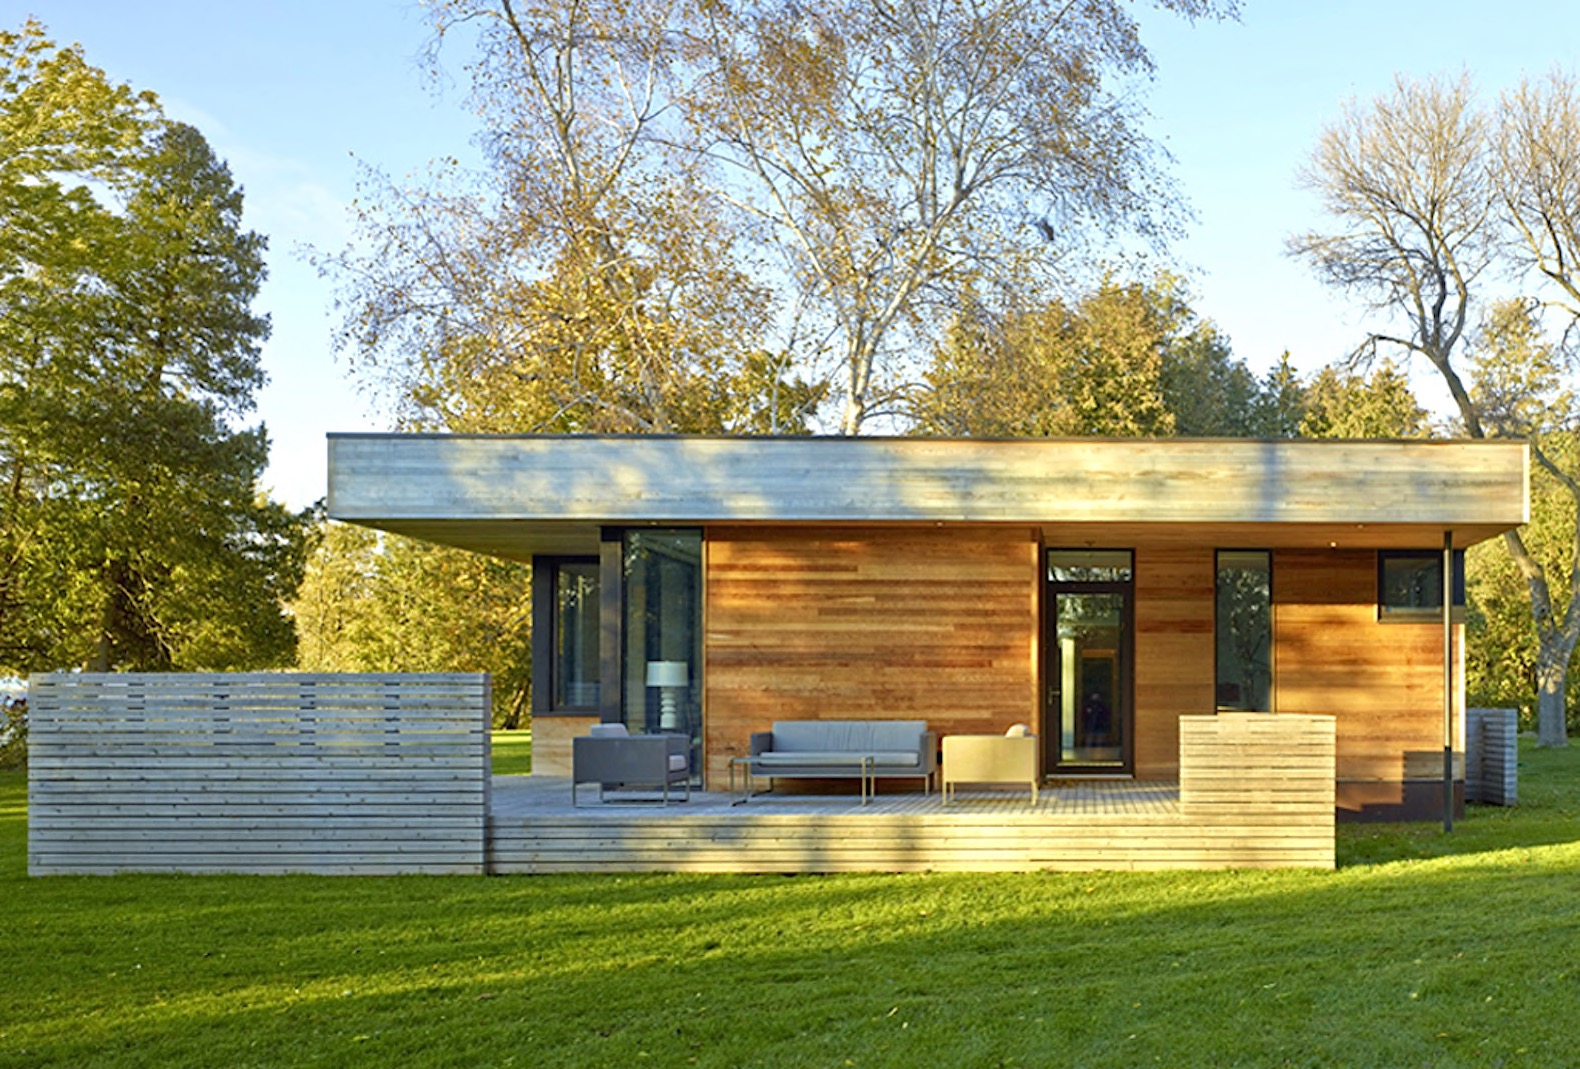 Prefabricated lakeside cabin is a beautiful exercise in restraint